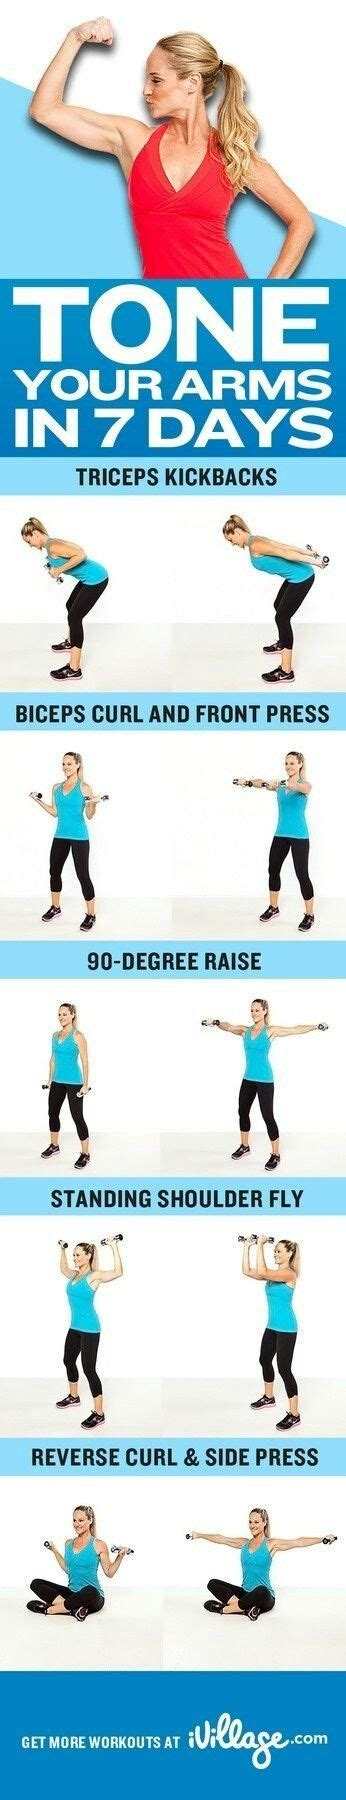 how to get toned arms tone your arms health pinterest